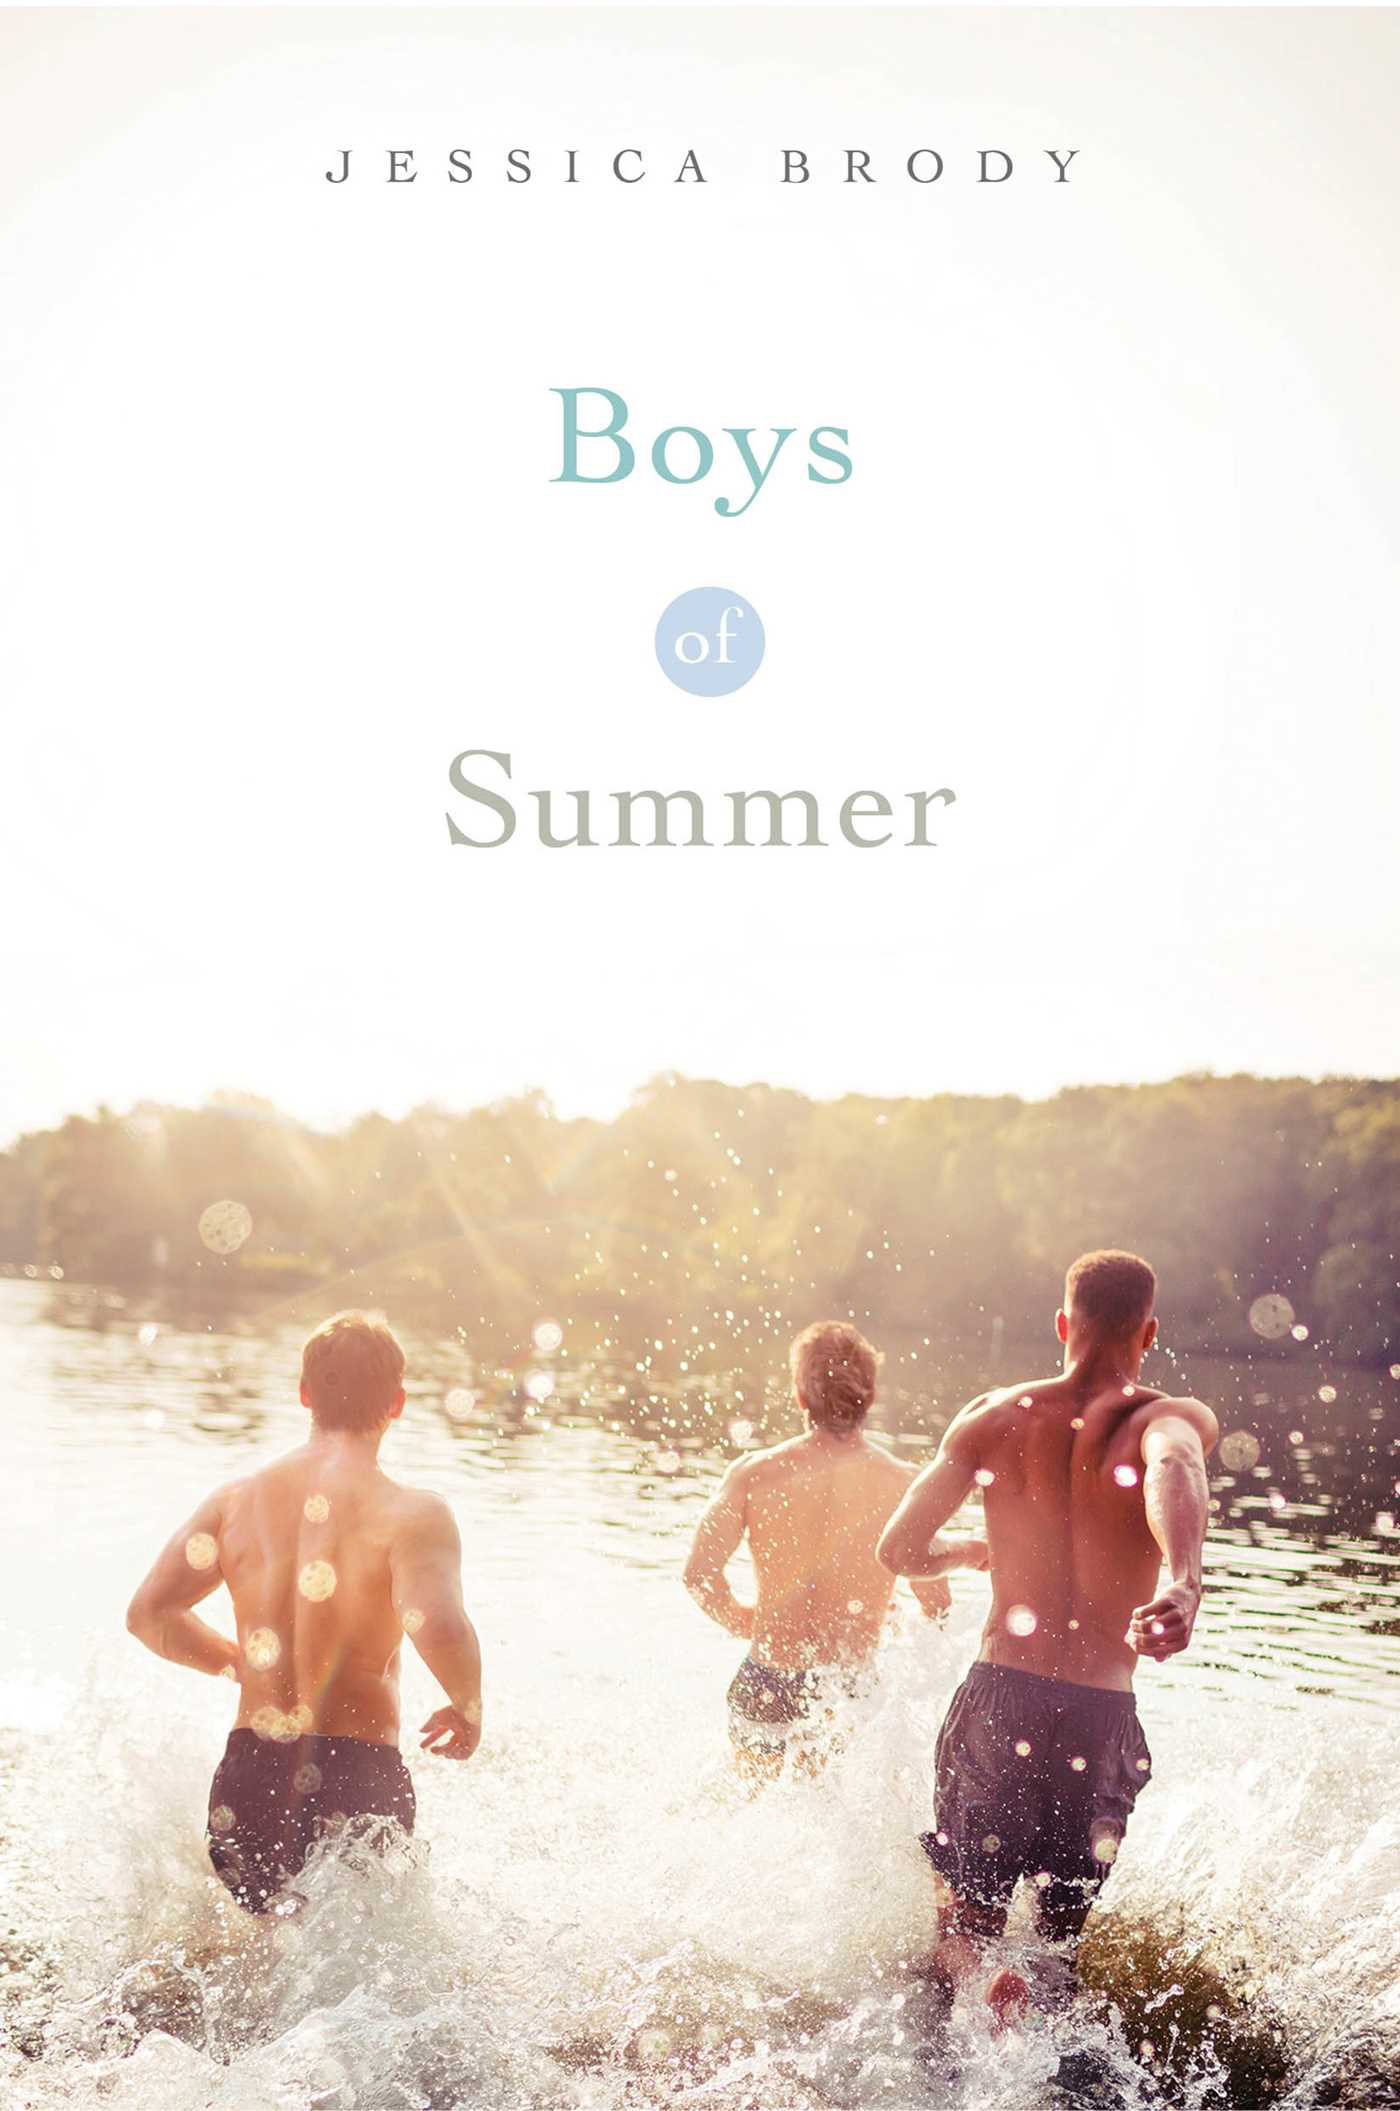 Read the first 16 chapters ofThe Boys of Summer by Jessica Brody!